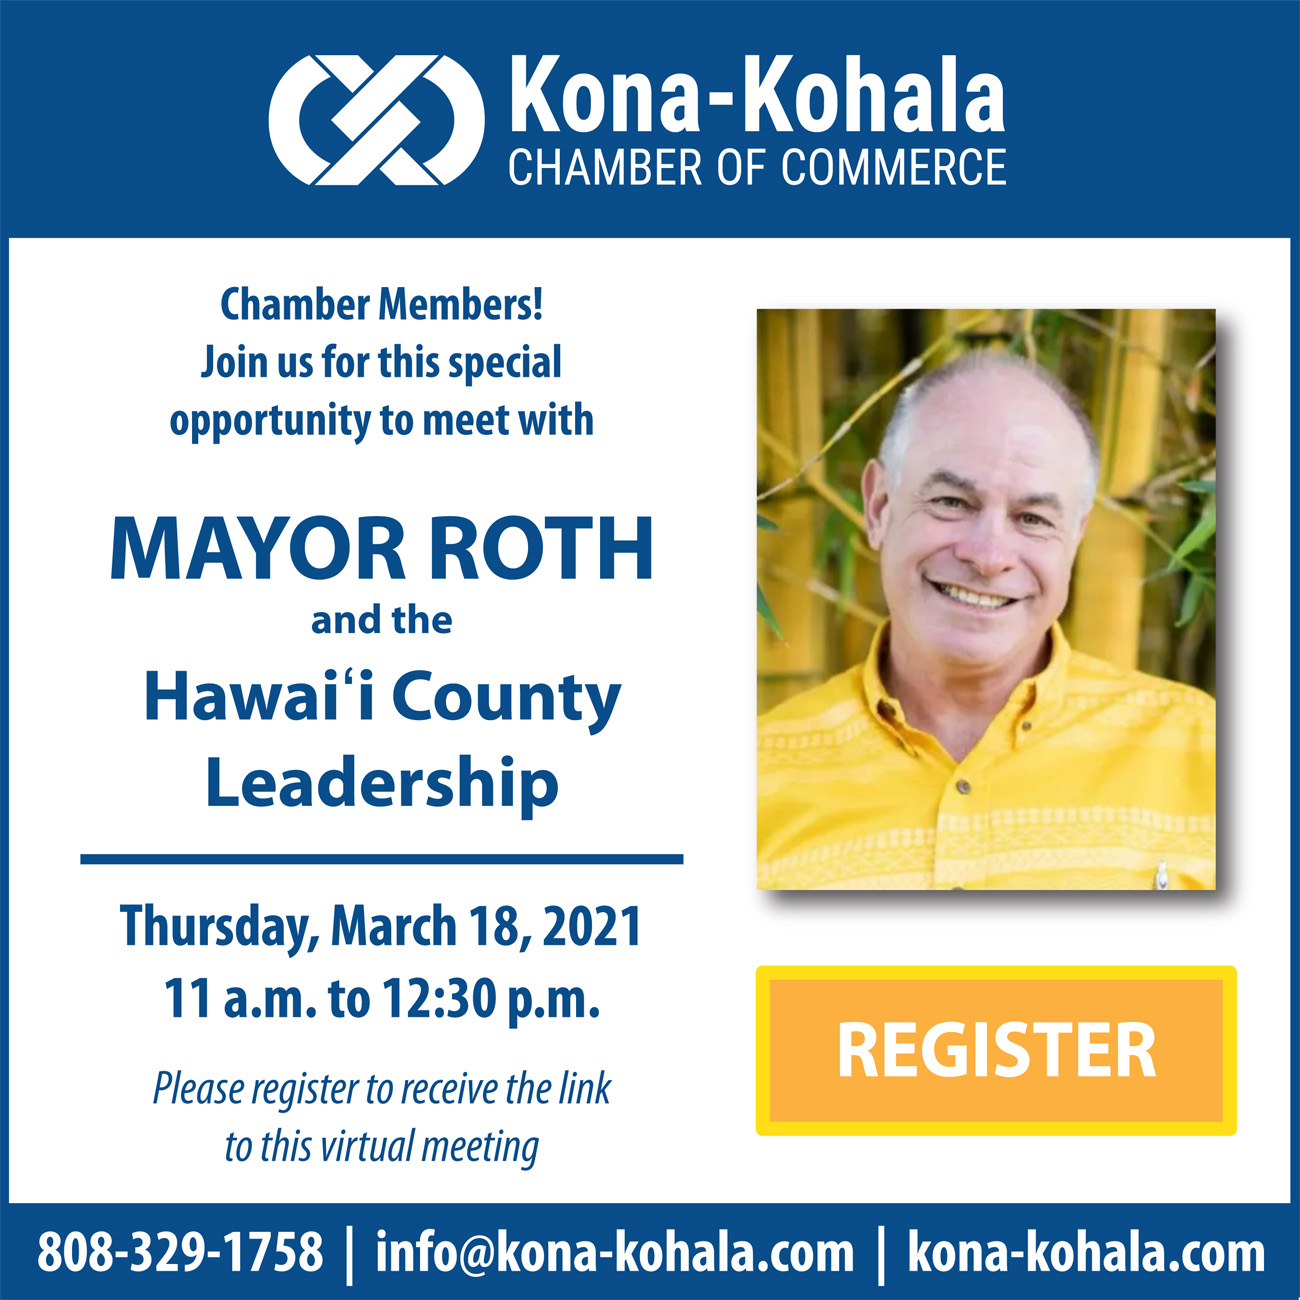 KKCC-2021-Meeting-with-Mayor-Roth-and-Hawaii-County-Leadership---Promo-Square.jpg